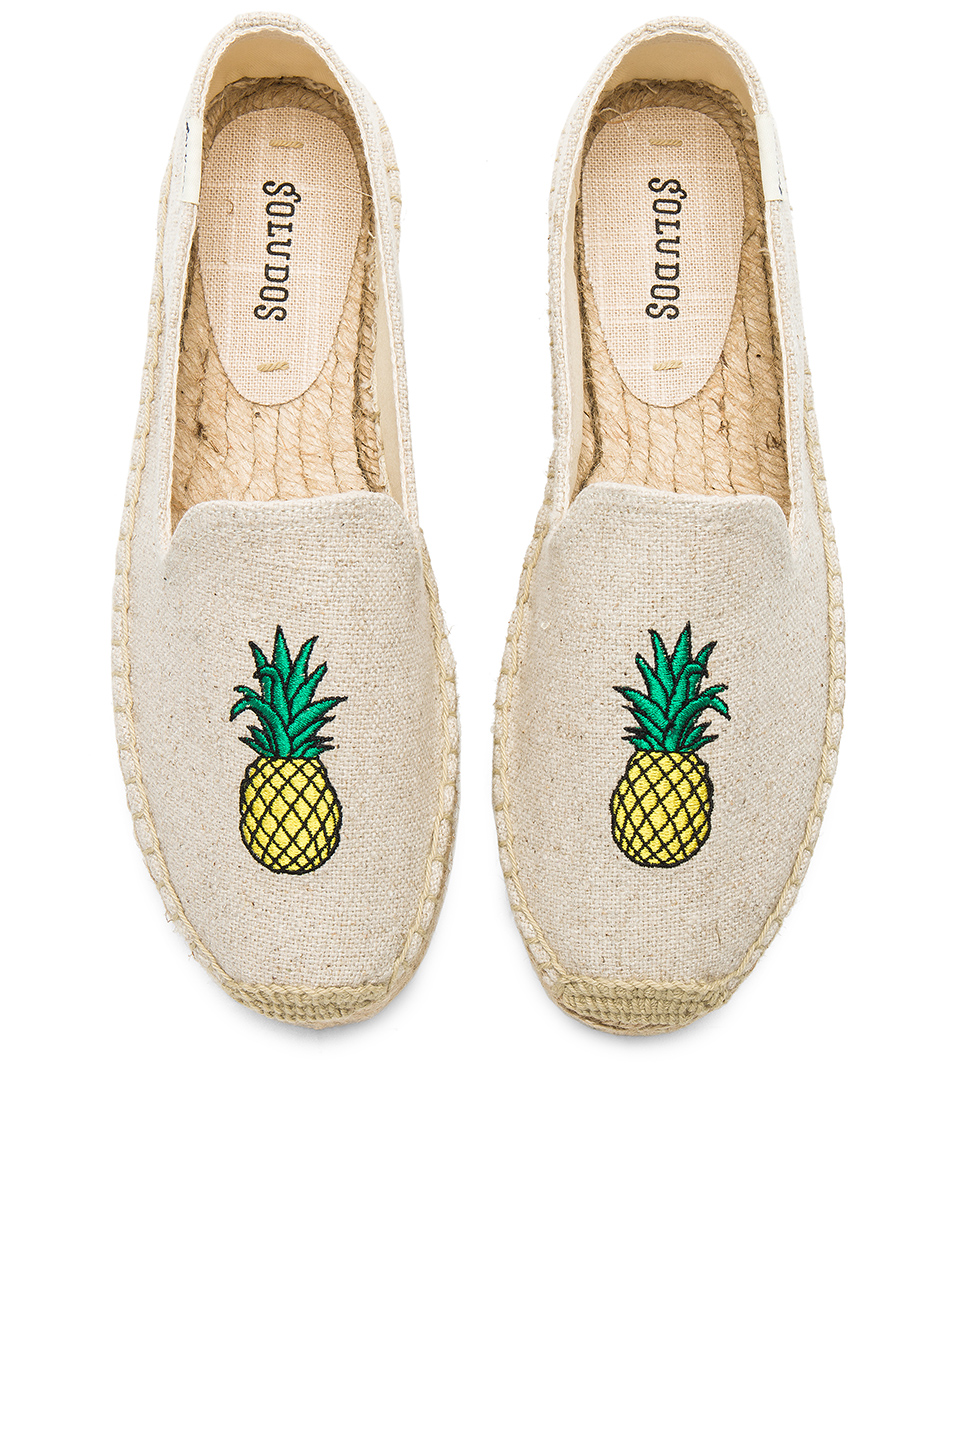 Soludos Pineapple Smoking Slipper in Sand